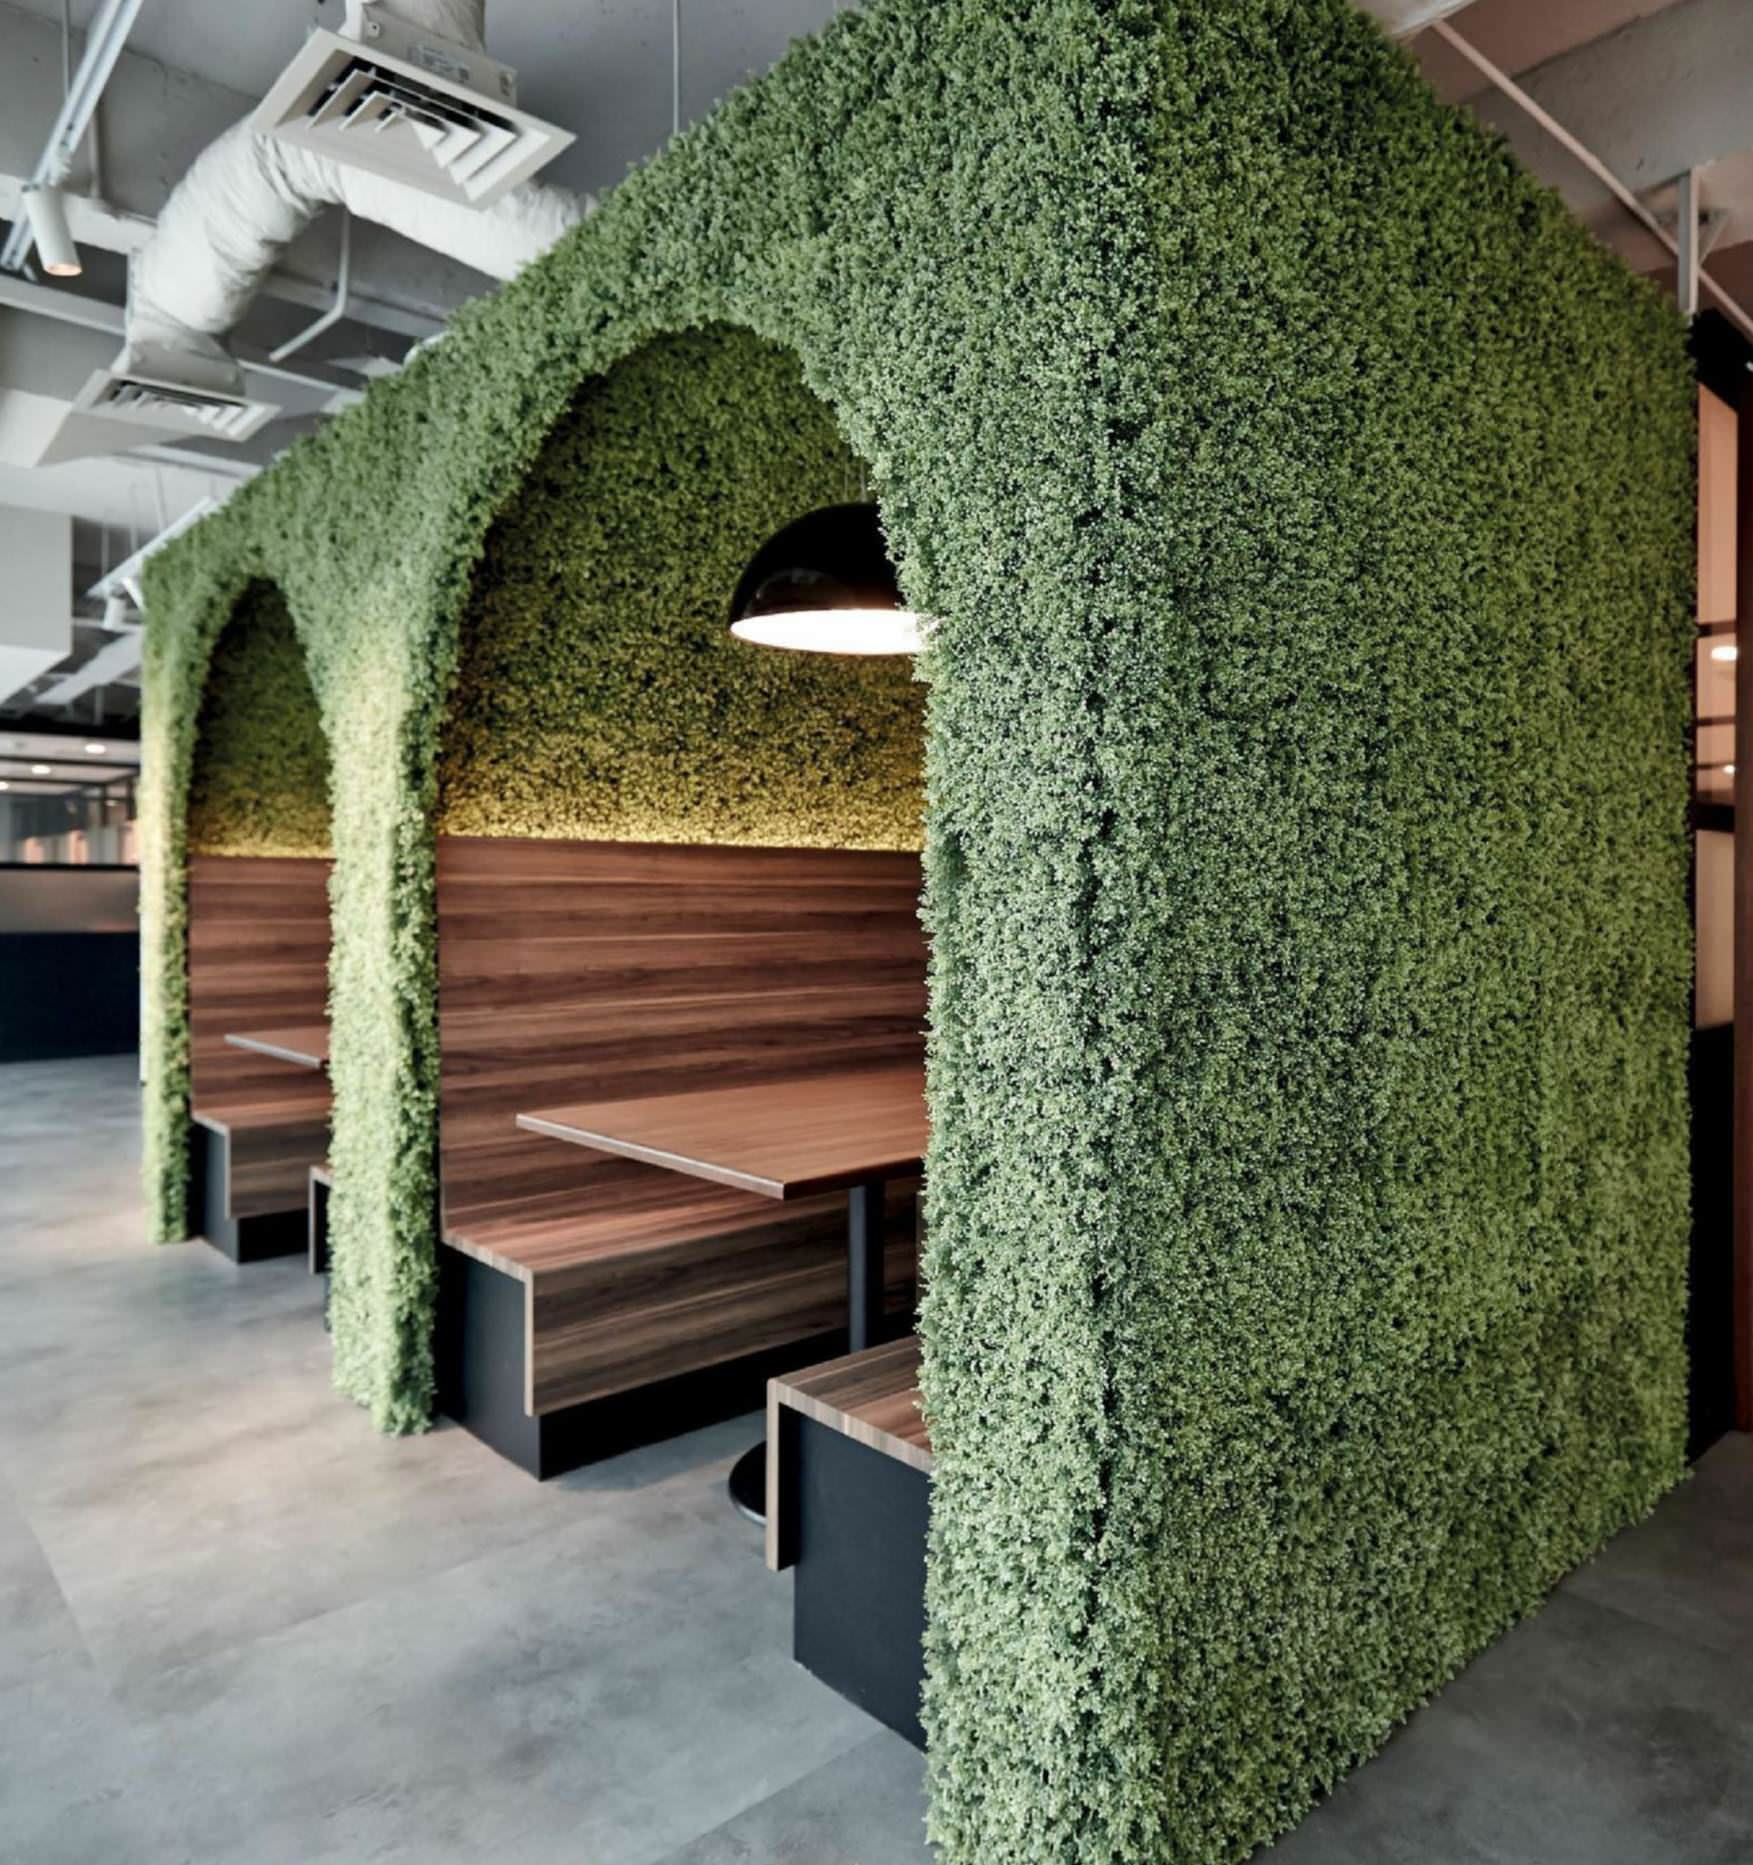 The Workspaces : Creative, Communal & Extra Cool